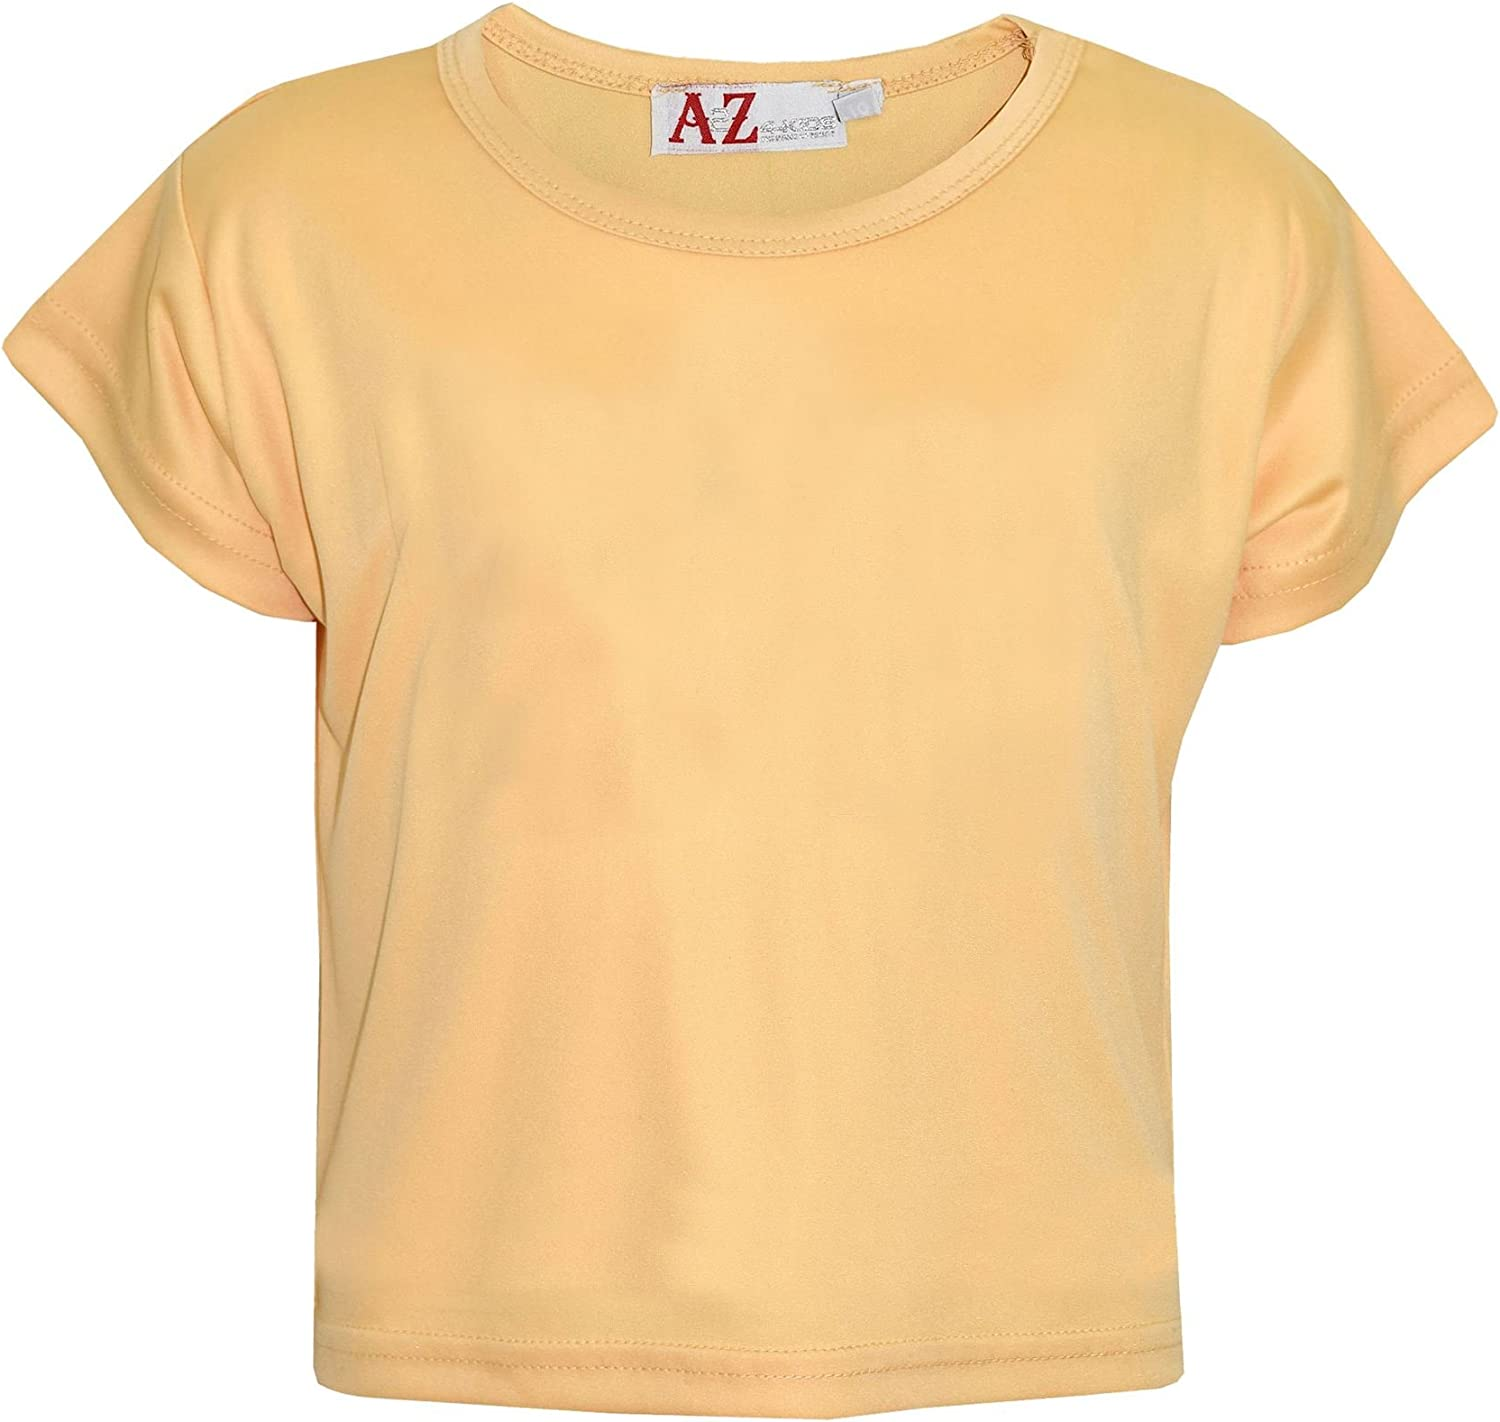 A2Z 4 Kids/® Girls Top Kids Plain Color Stylish Fahsion Trendy T Shirt Crop Top New Age 5 6 7 8 9 10 11 12 13 Years